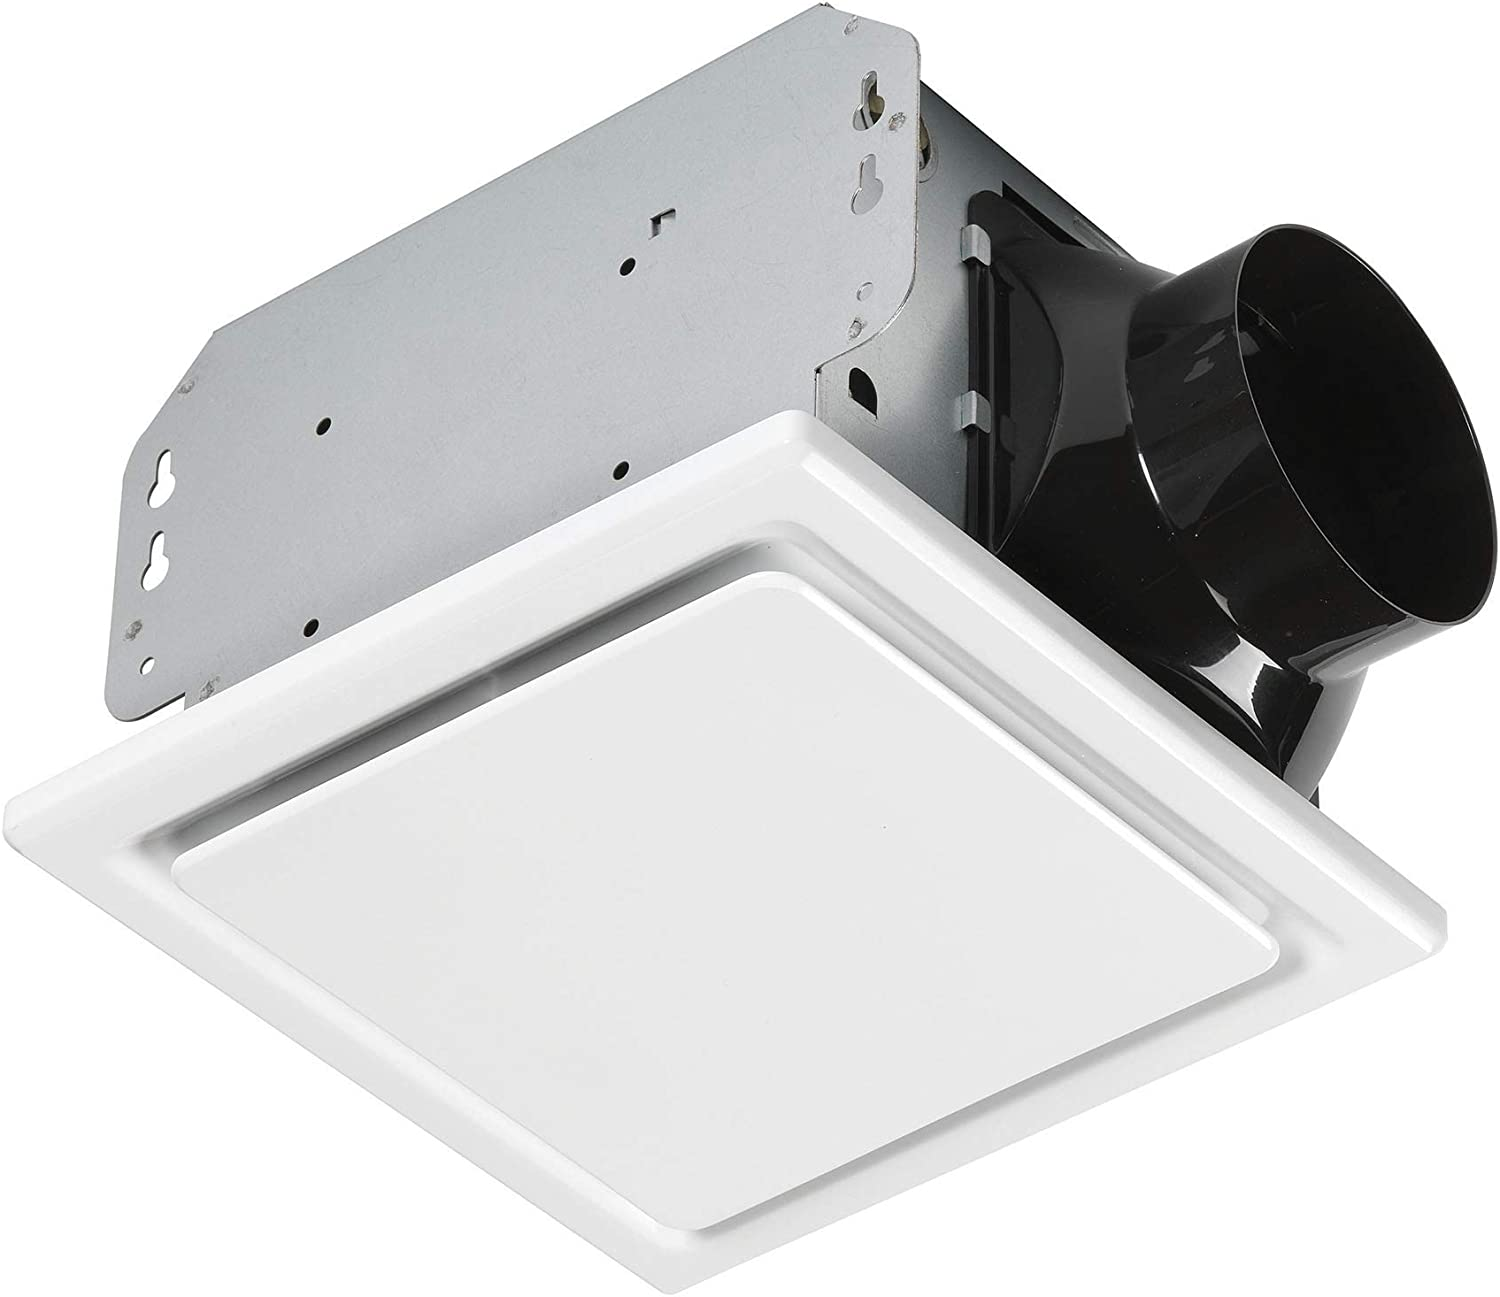 Homewerks Worldwide 7140-80 Bathroom Fan Ceiling Mount Exhaust Ventilation 1.5 Sones 80 CFM, White